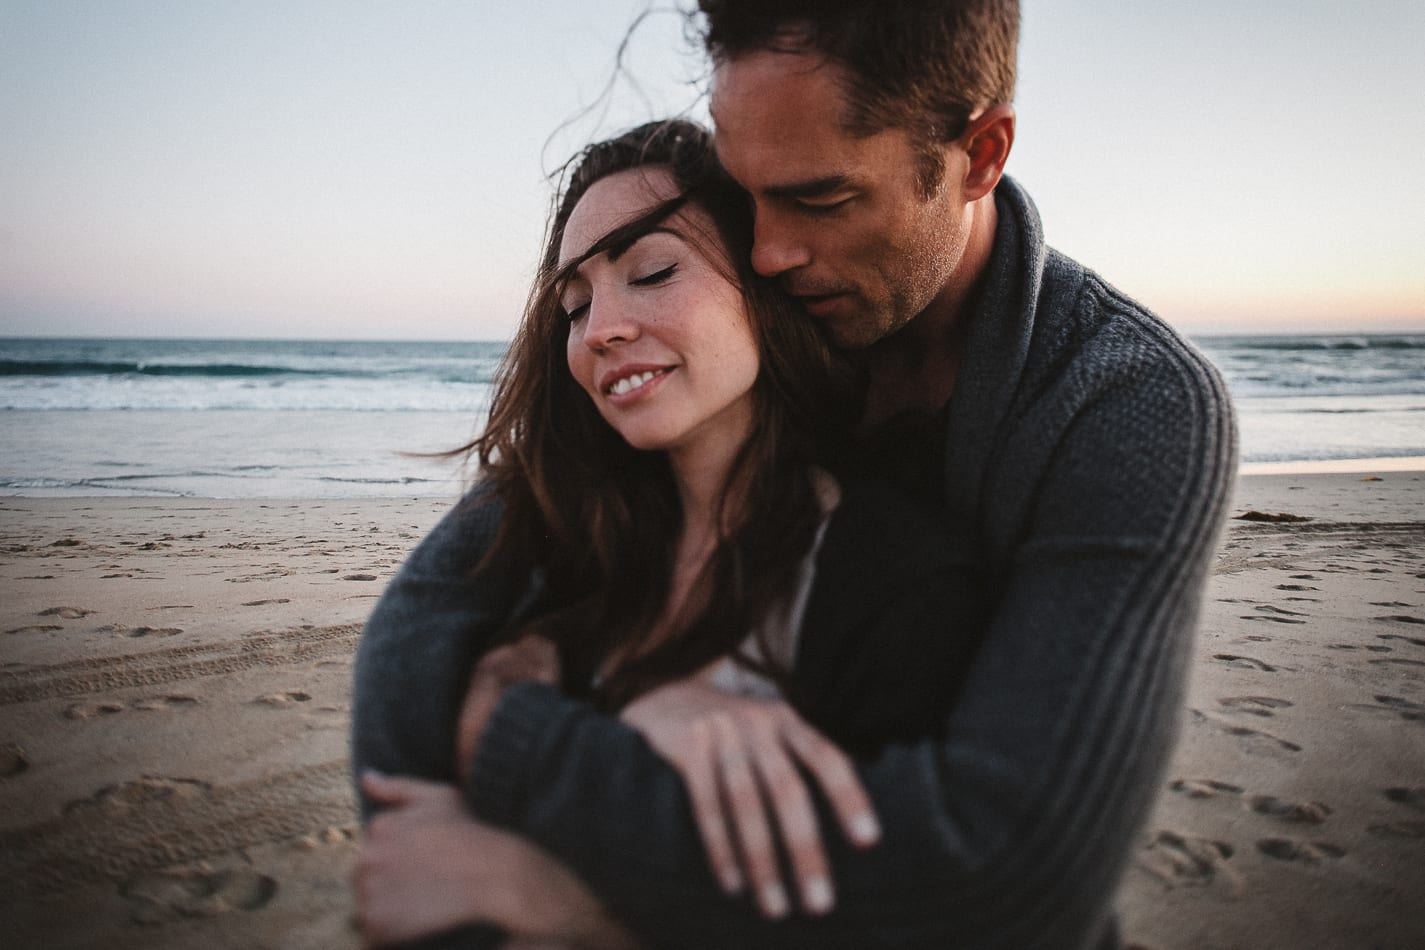 jason-alyssa-huntington-beach-california-engagement-photographer-37